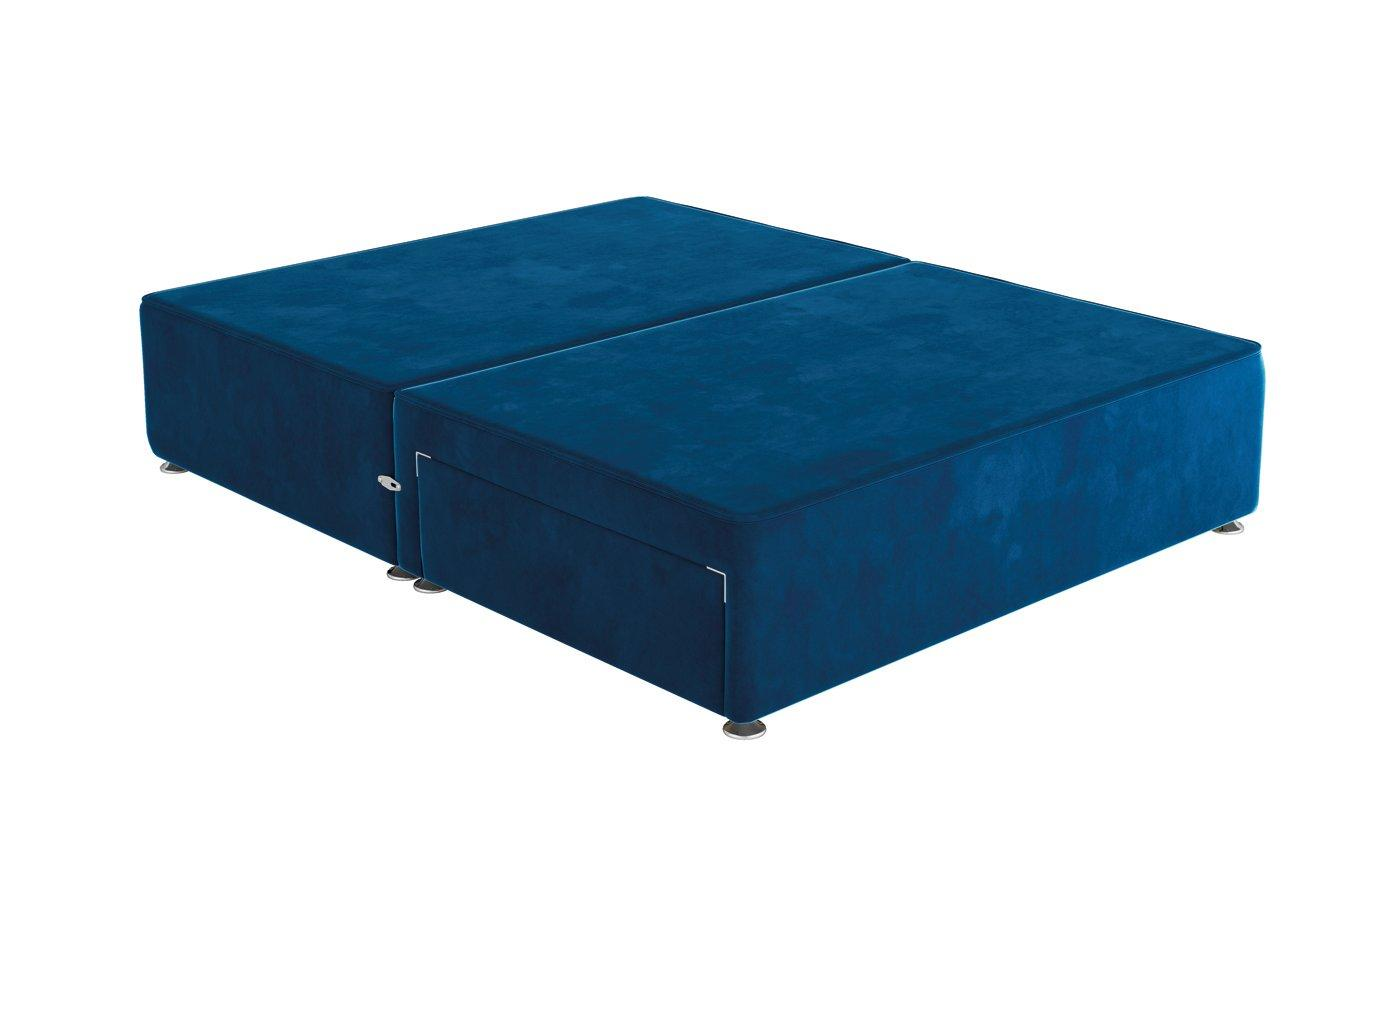 Sleepeezee K P/T 2 Drw Base Plush Navy 5'0 King BLUE